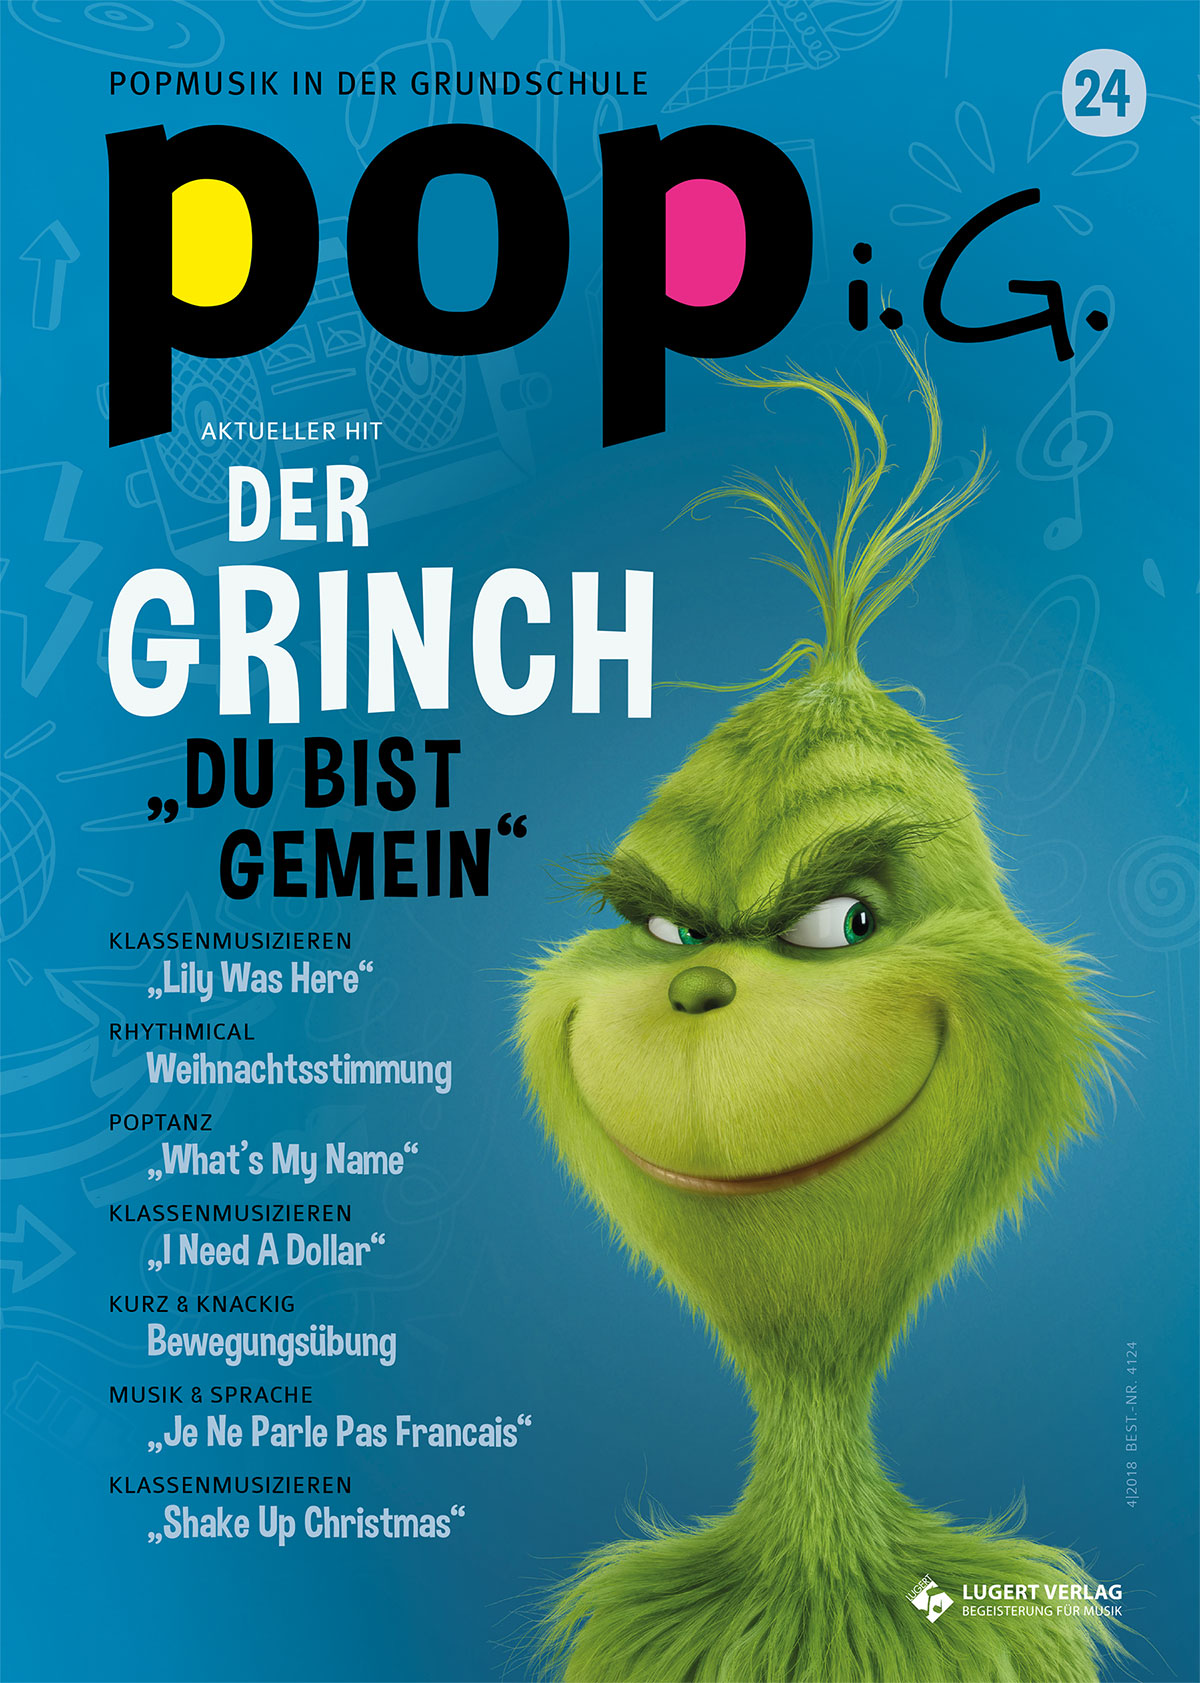 the grinch quotes.html